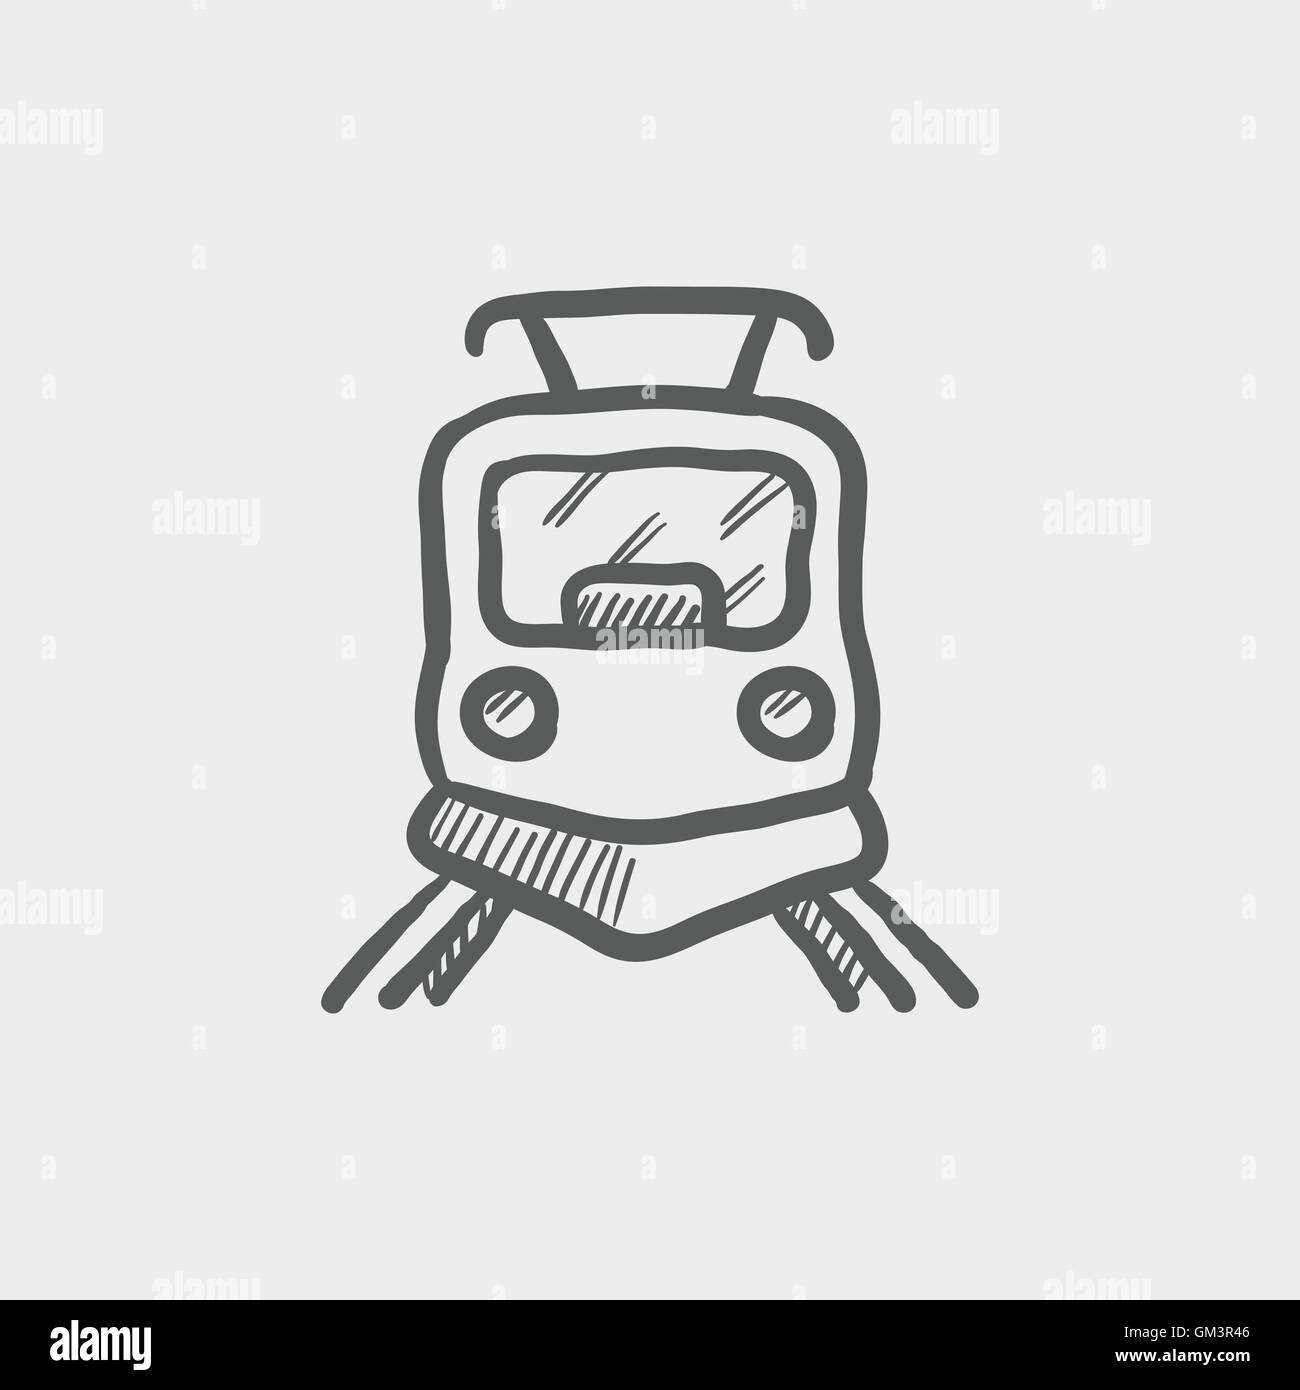 Front view of train sketch icon Stock Vector Art